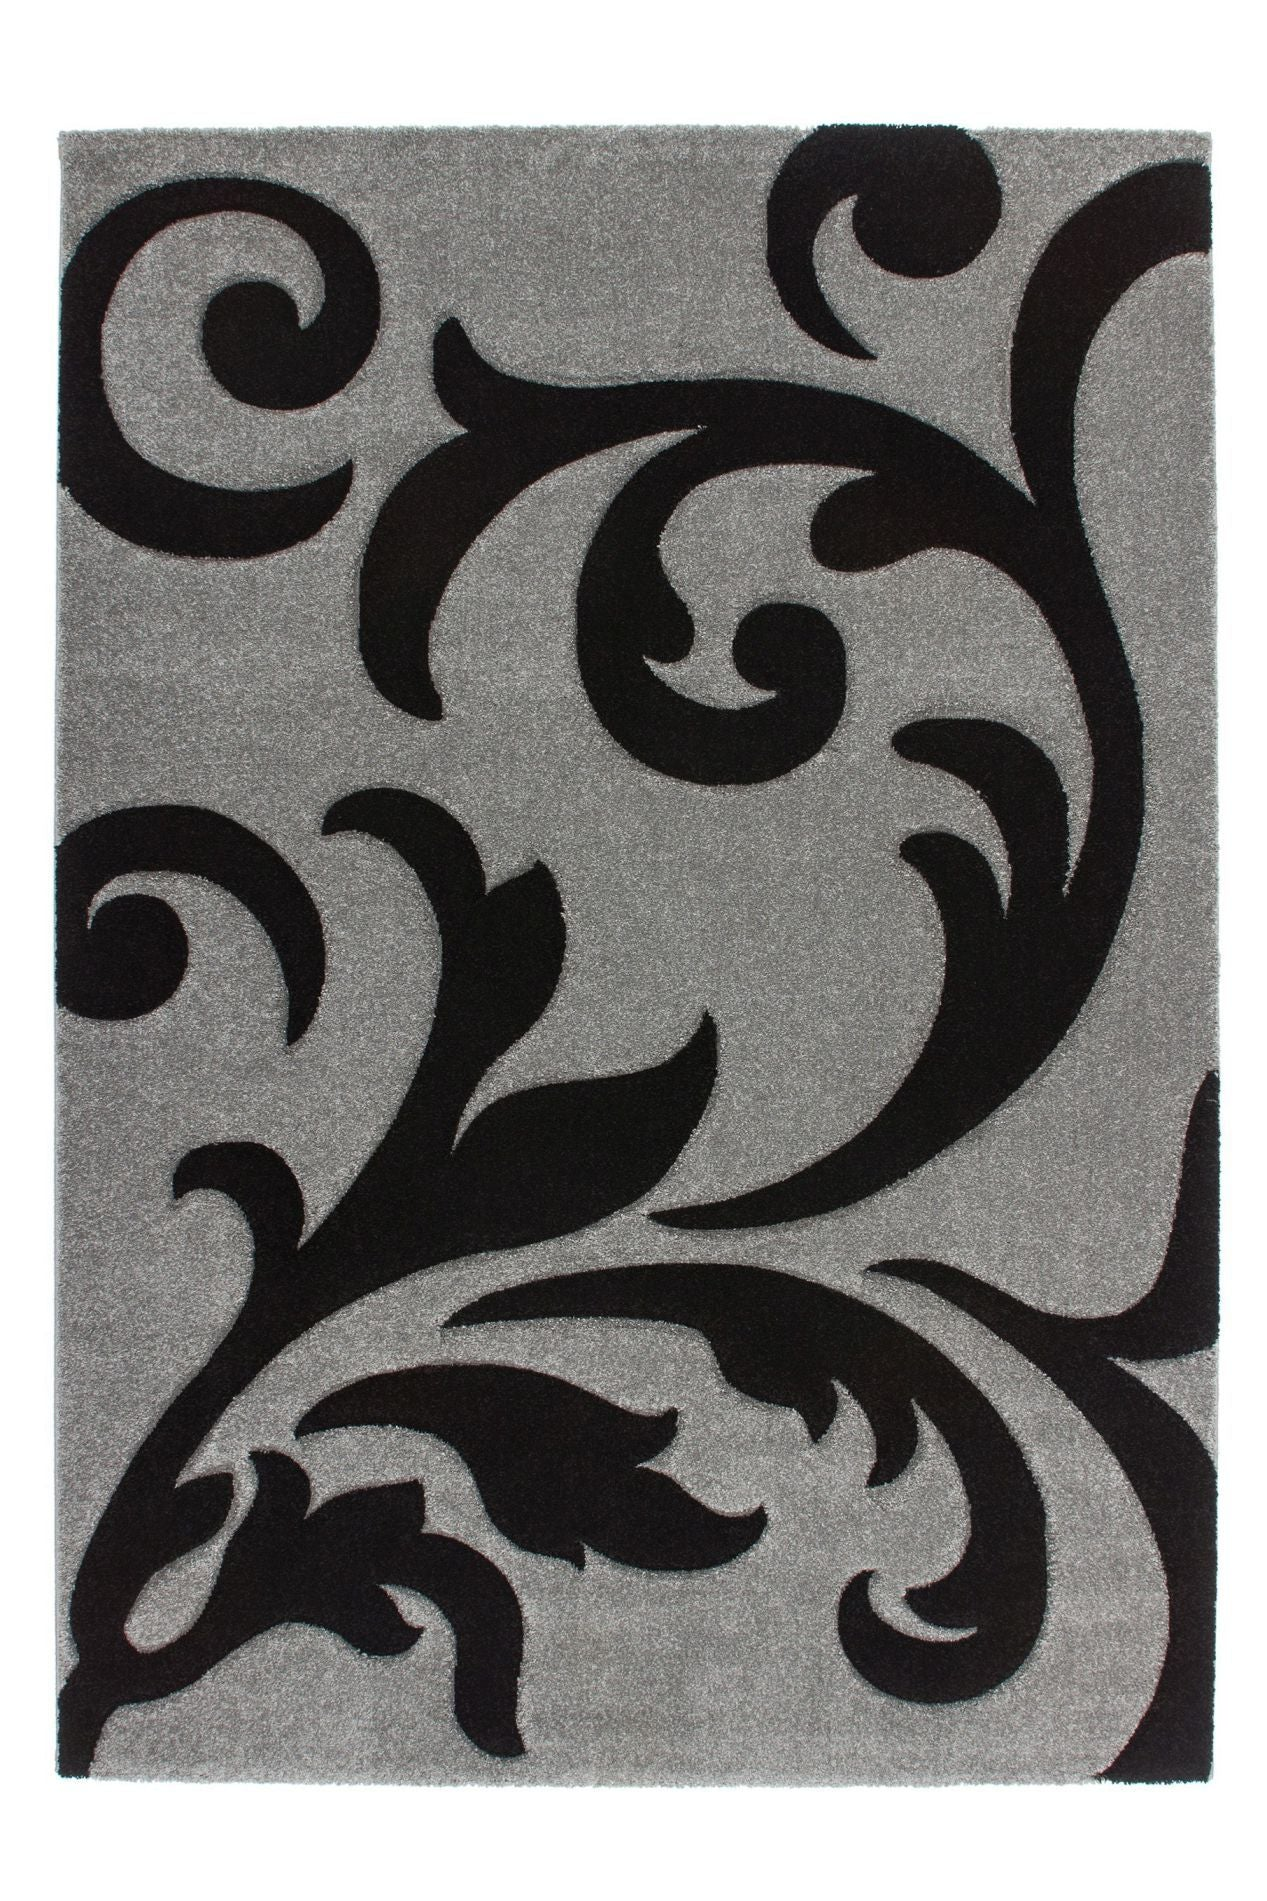 Lambada 451 Thick Silver-Black Rug with Floral Design - Lalee Designer Rugs